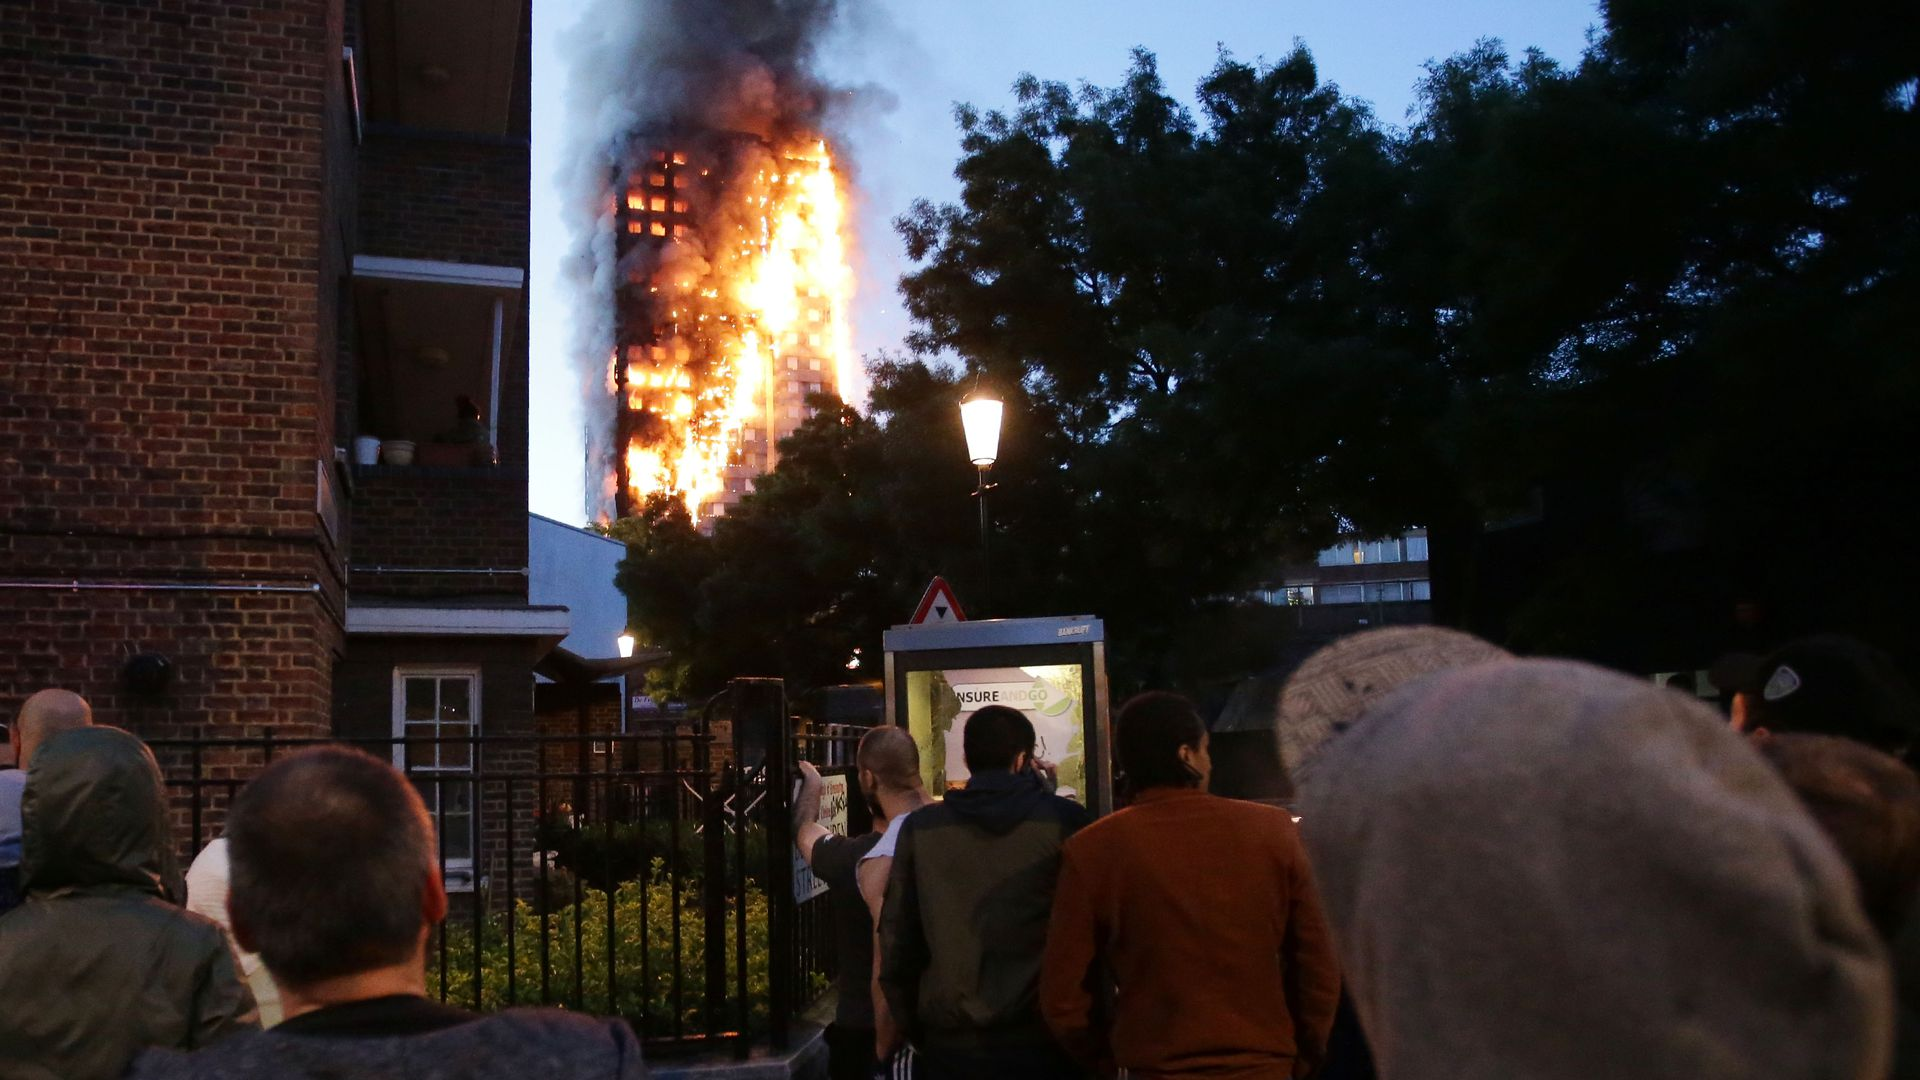 Local residents watch as Grenfell Tower is engulfed by fire on June 14, 2017 in west London.